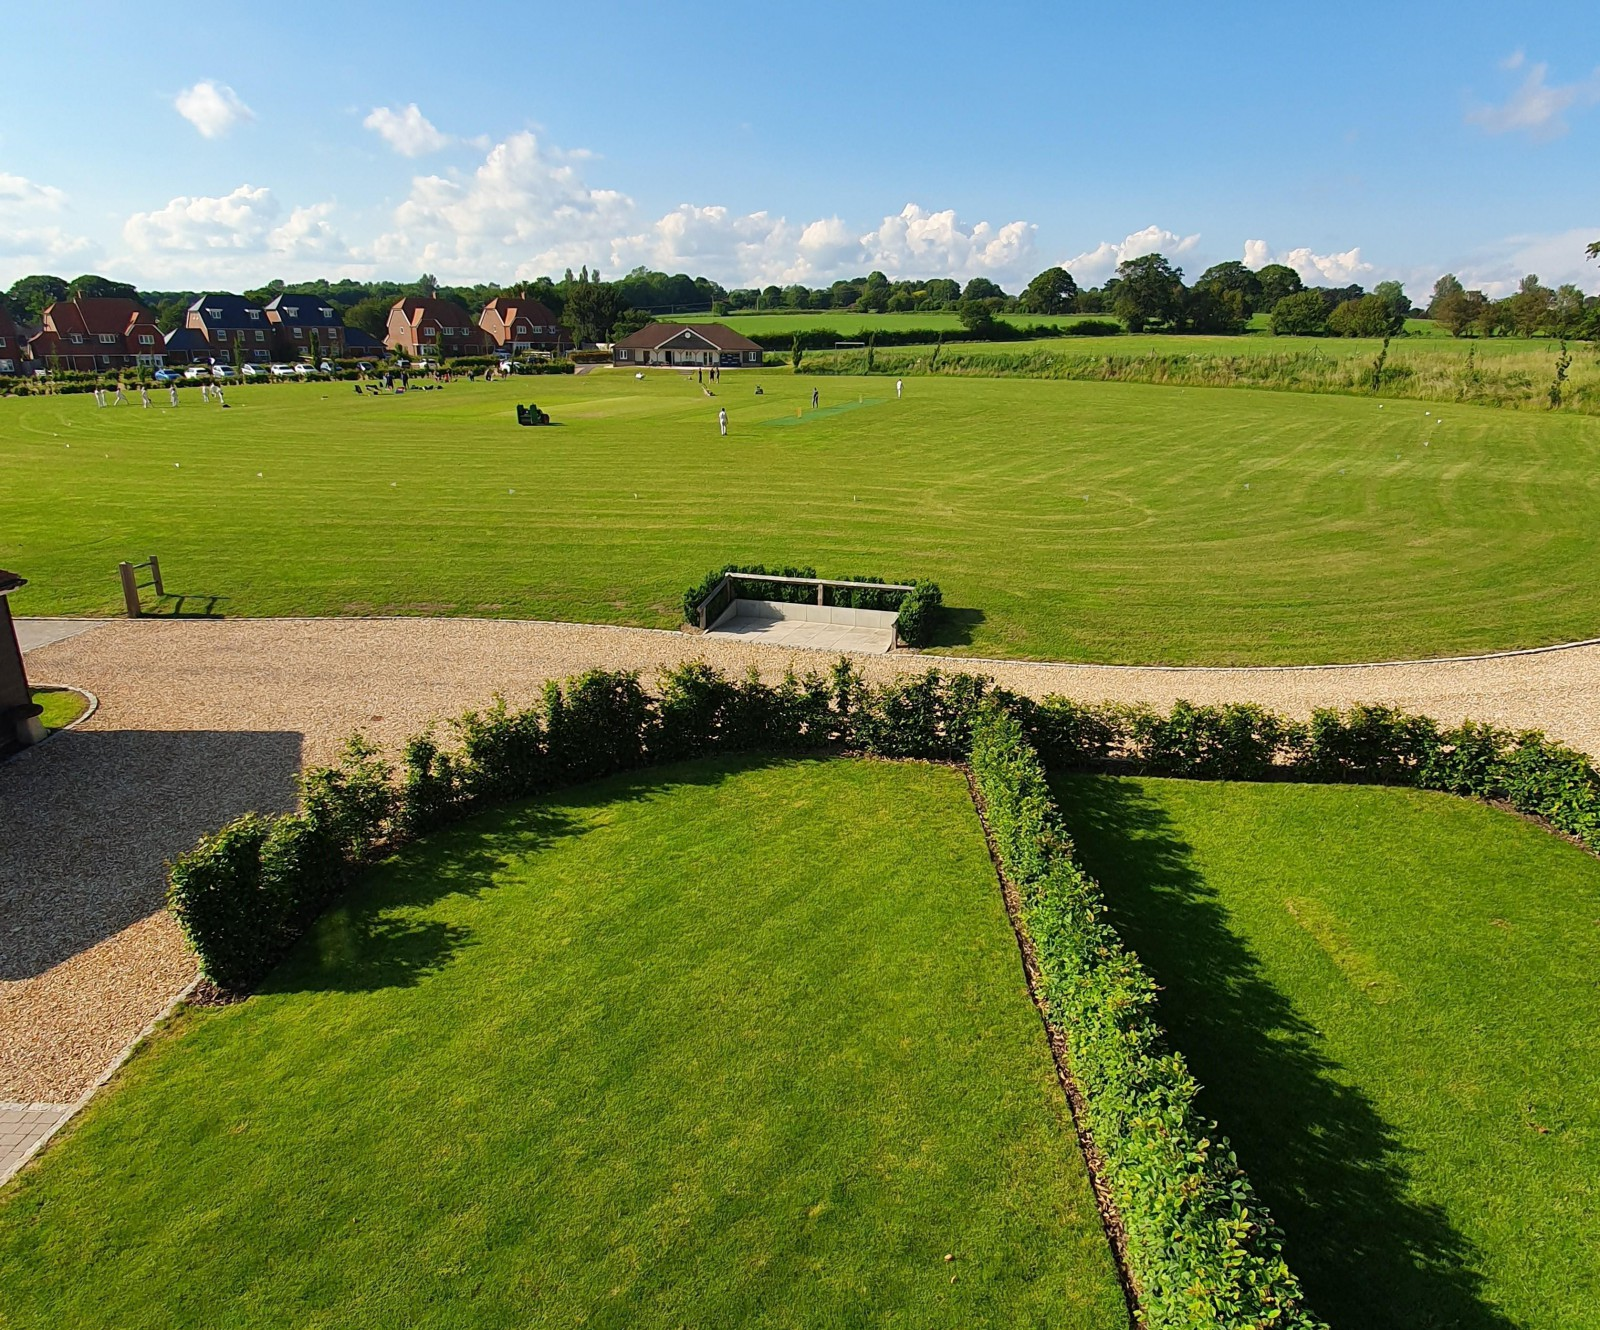 Outlook over Cricket Pitch